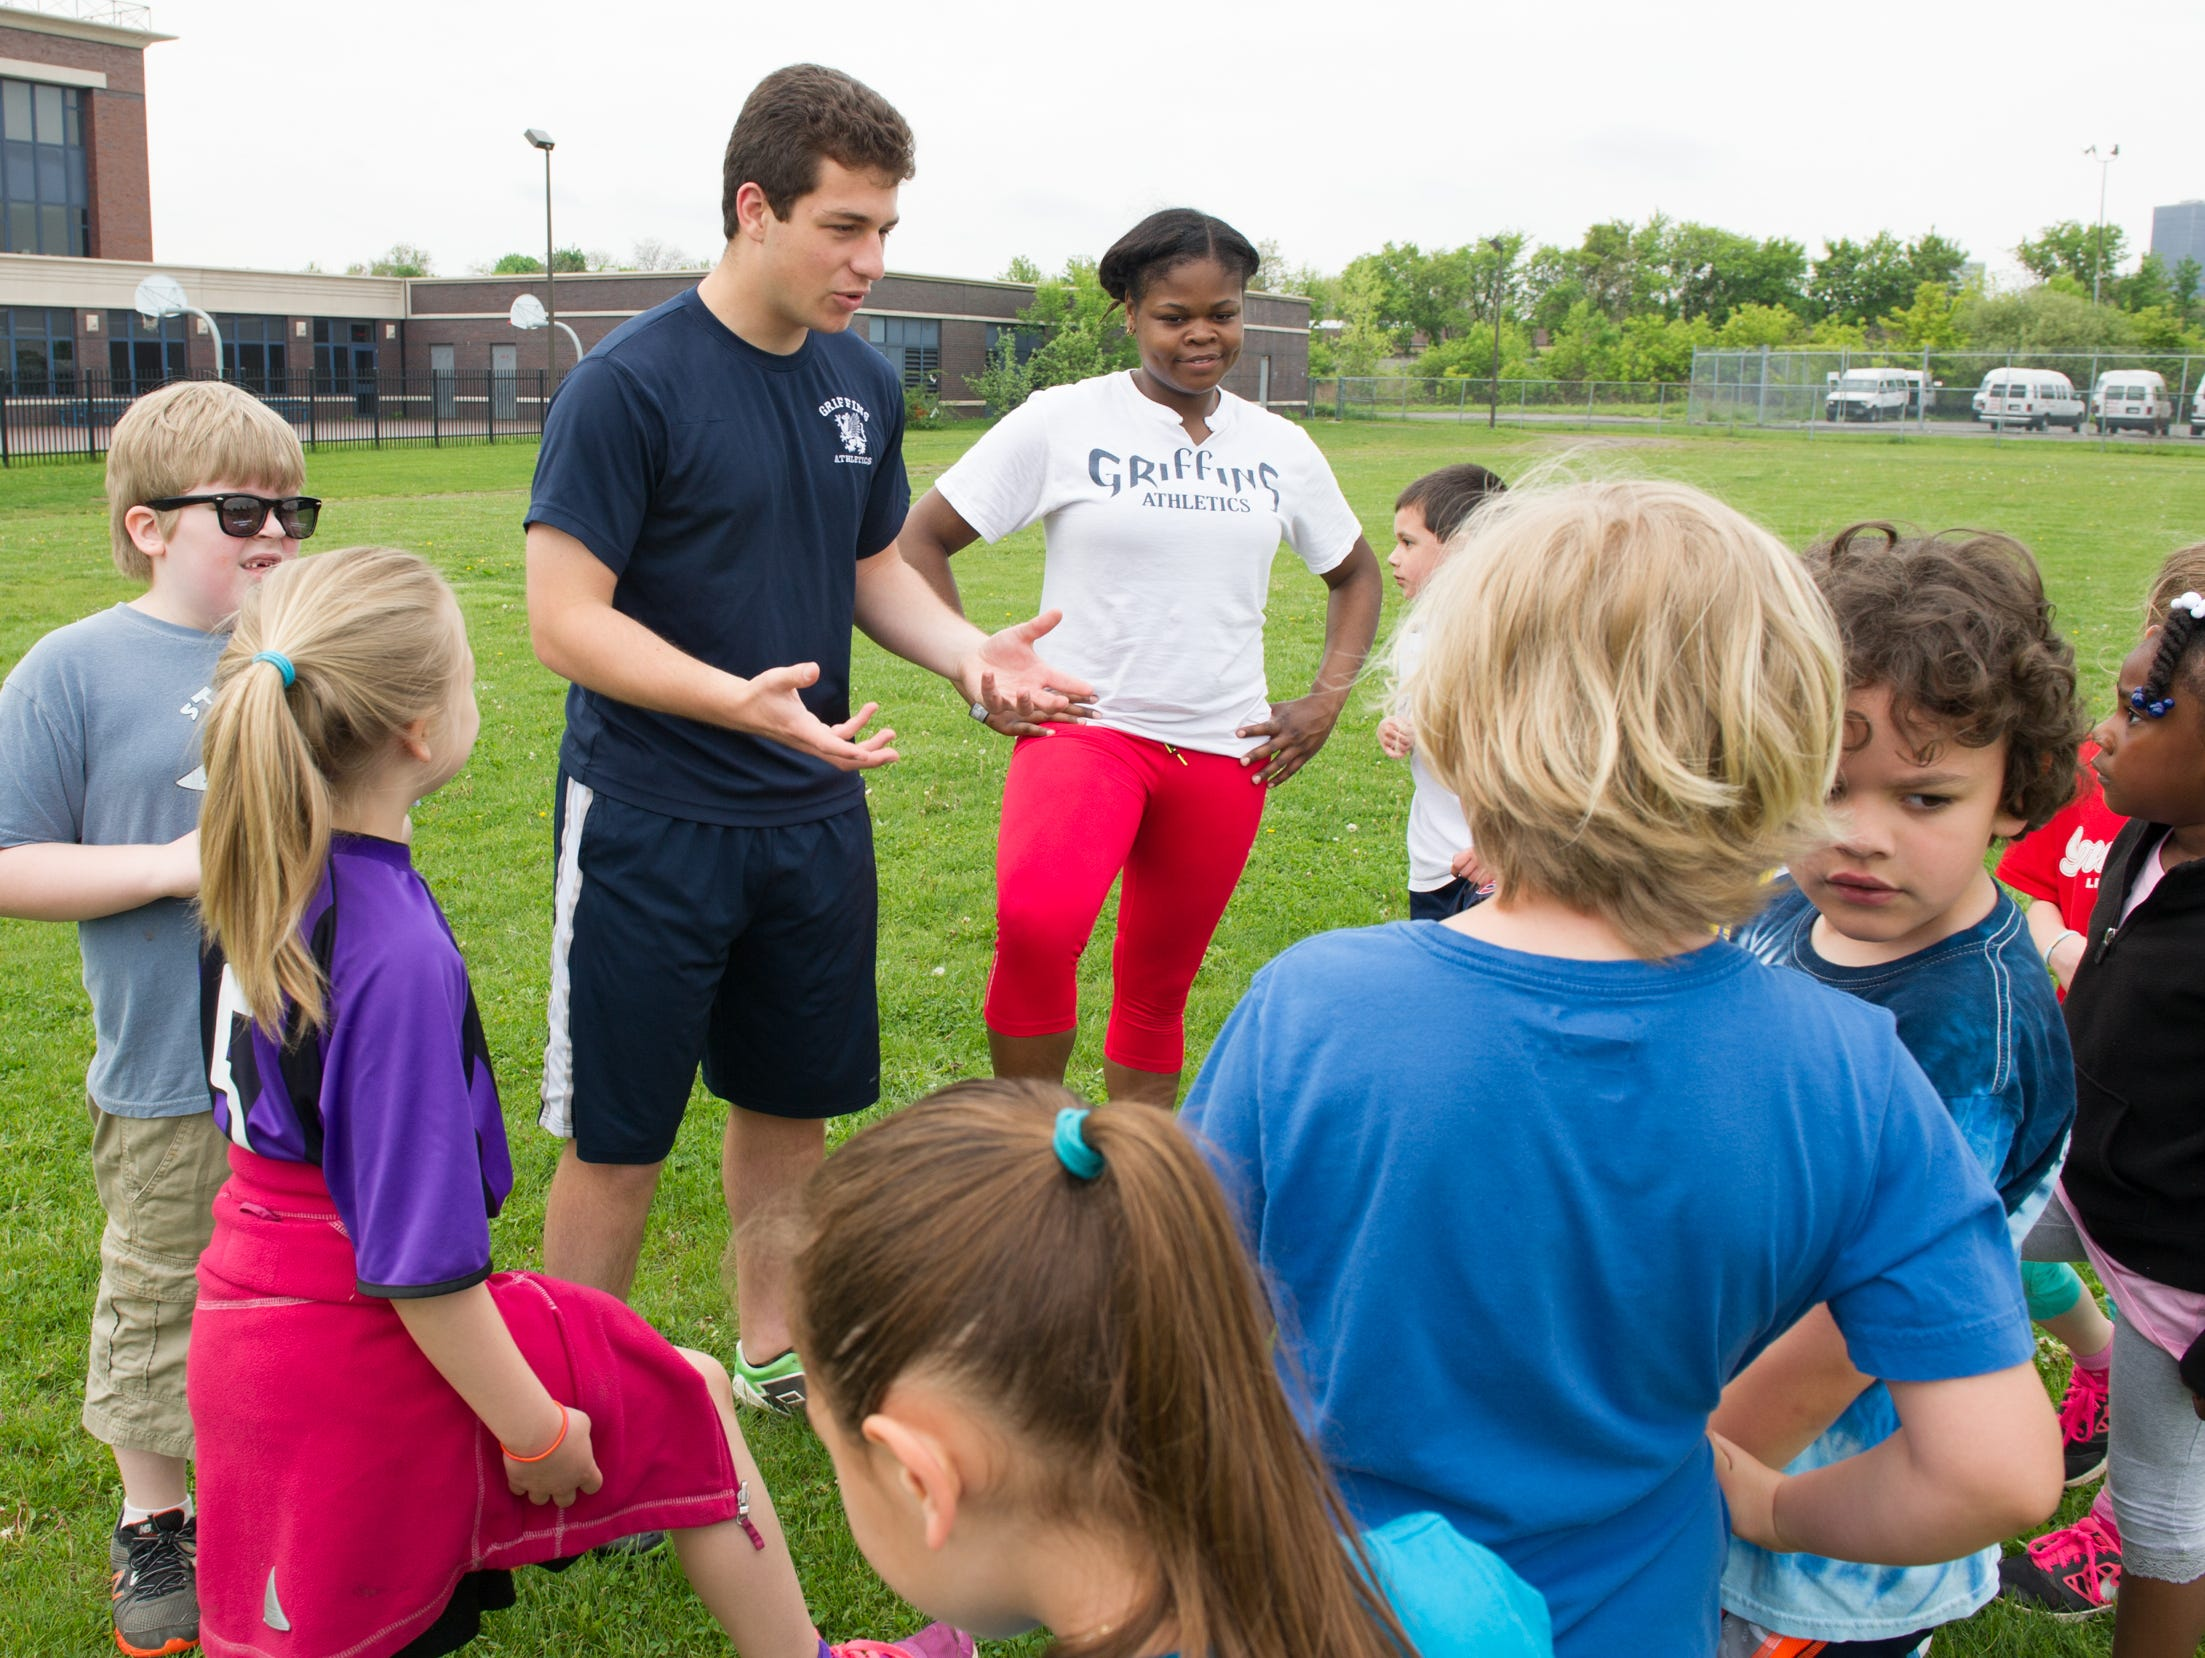 World of Inquiry senior Jason Cherin, 18, of Rochester runs a series of soccer clinics in the city of Rochester for grades K-12. His best friend, senior Quinterra Robinson, 18, of Rochester, right, is one of his assistant coaches.